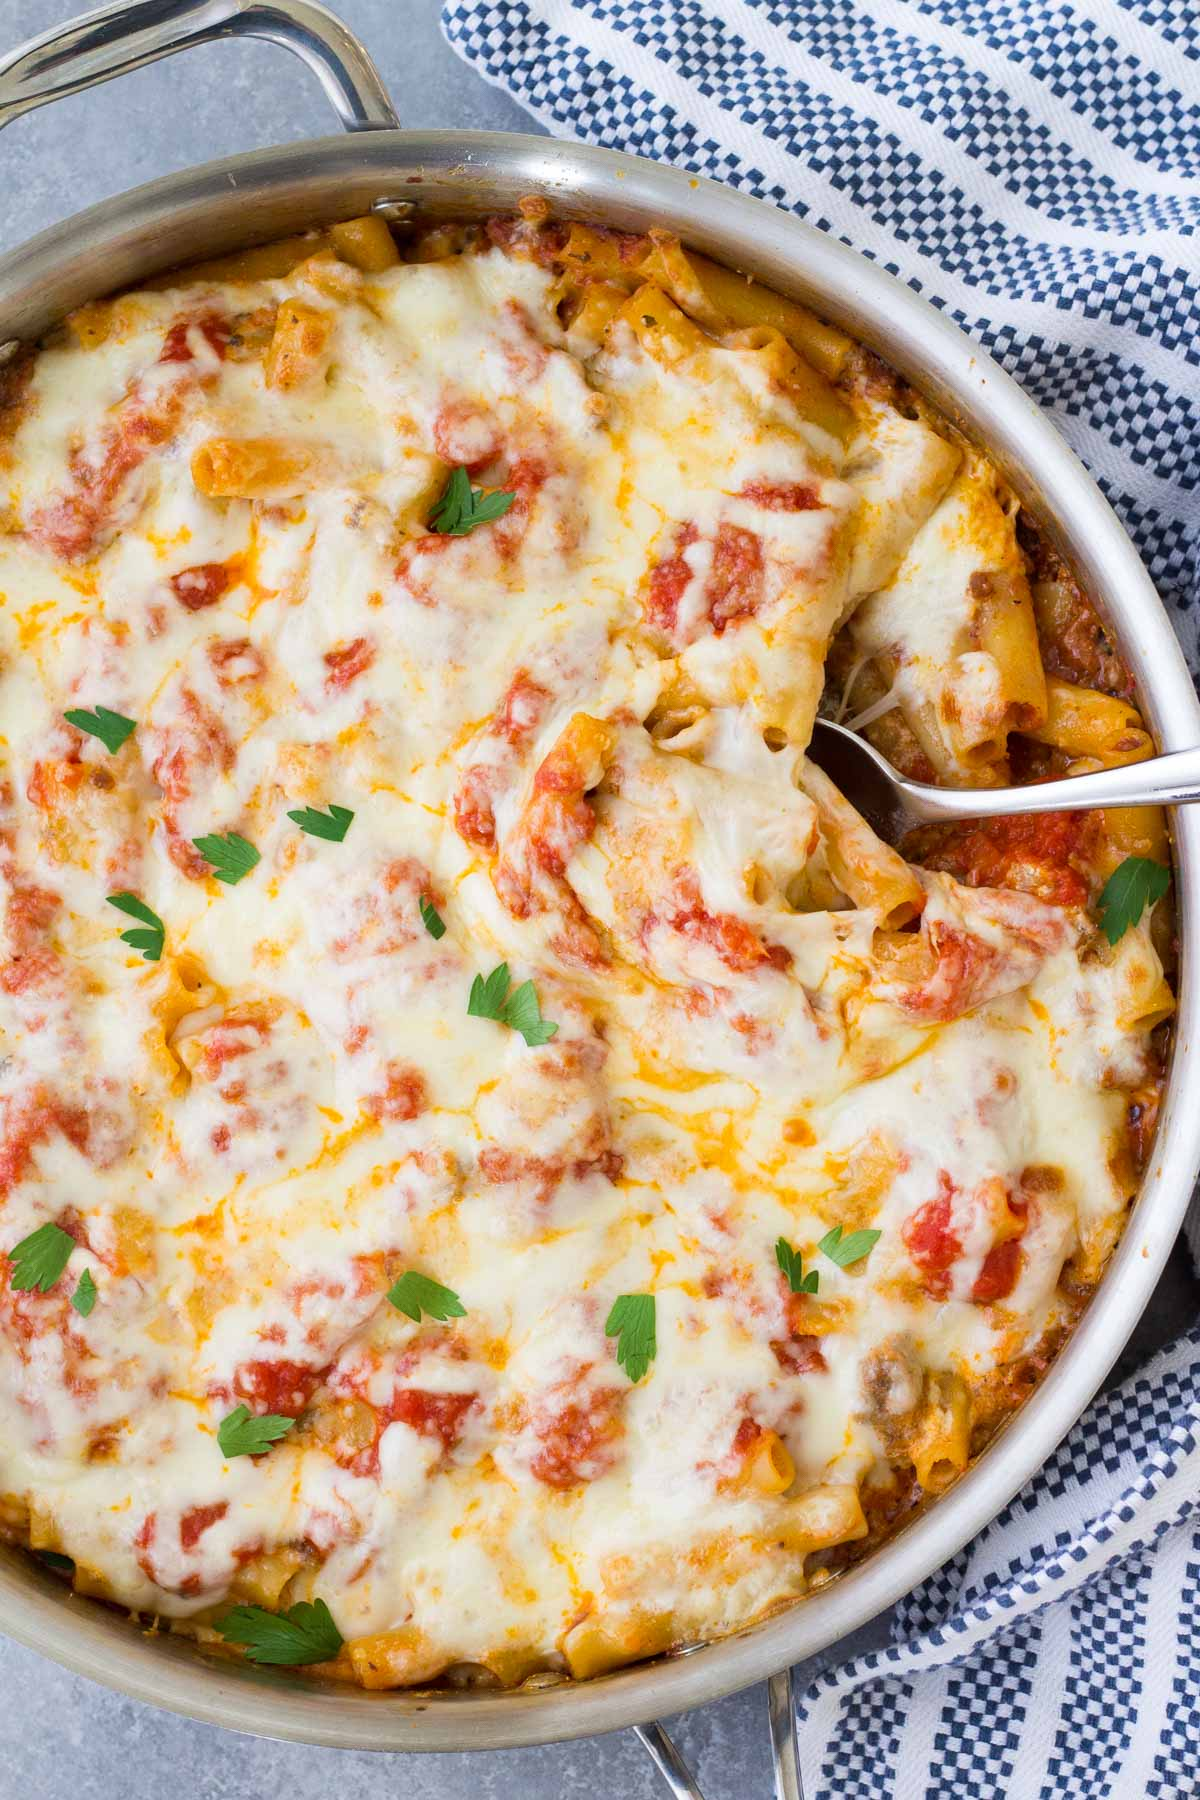 Baked ziti in a skillet with a serving spoon.